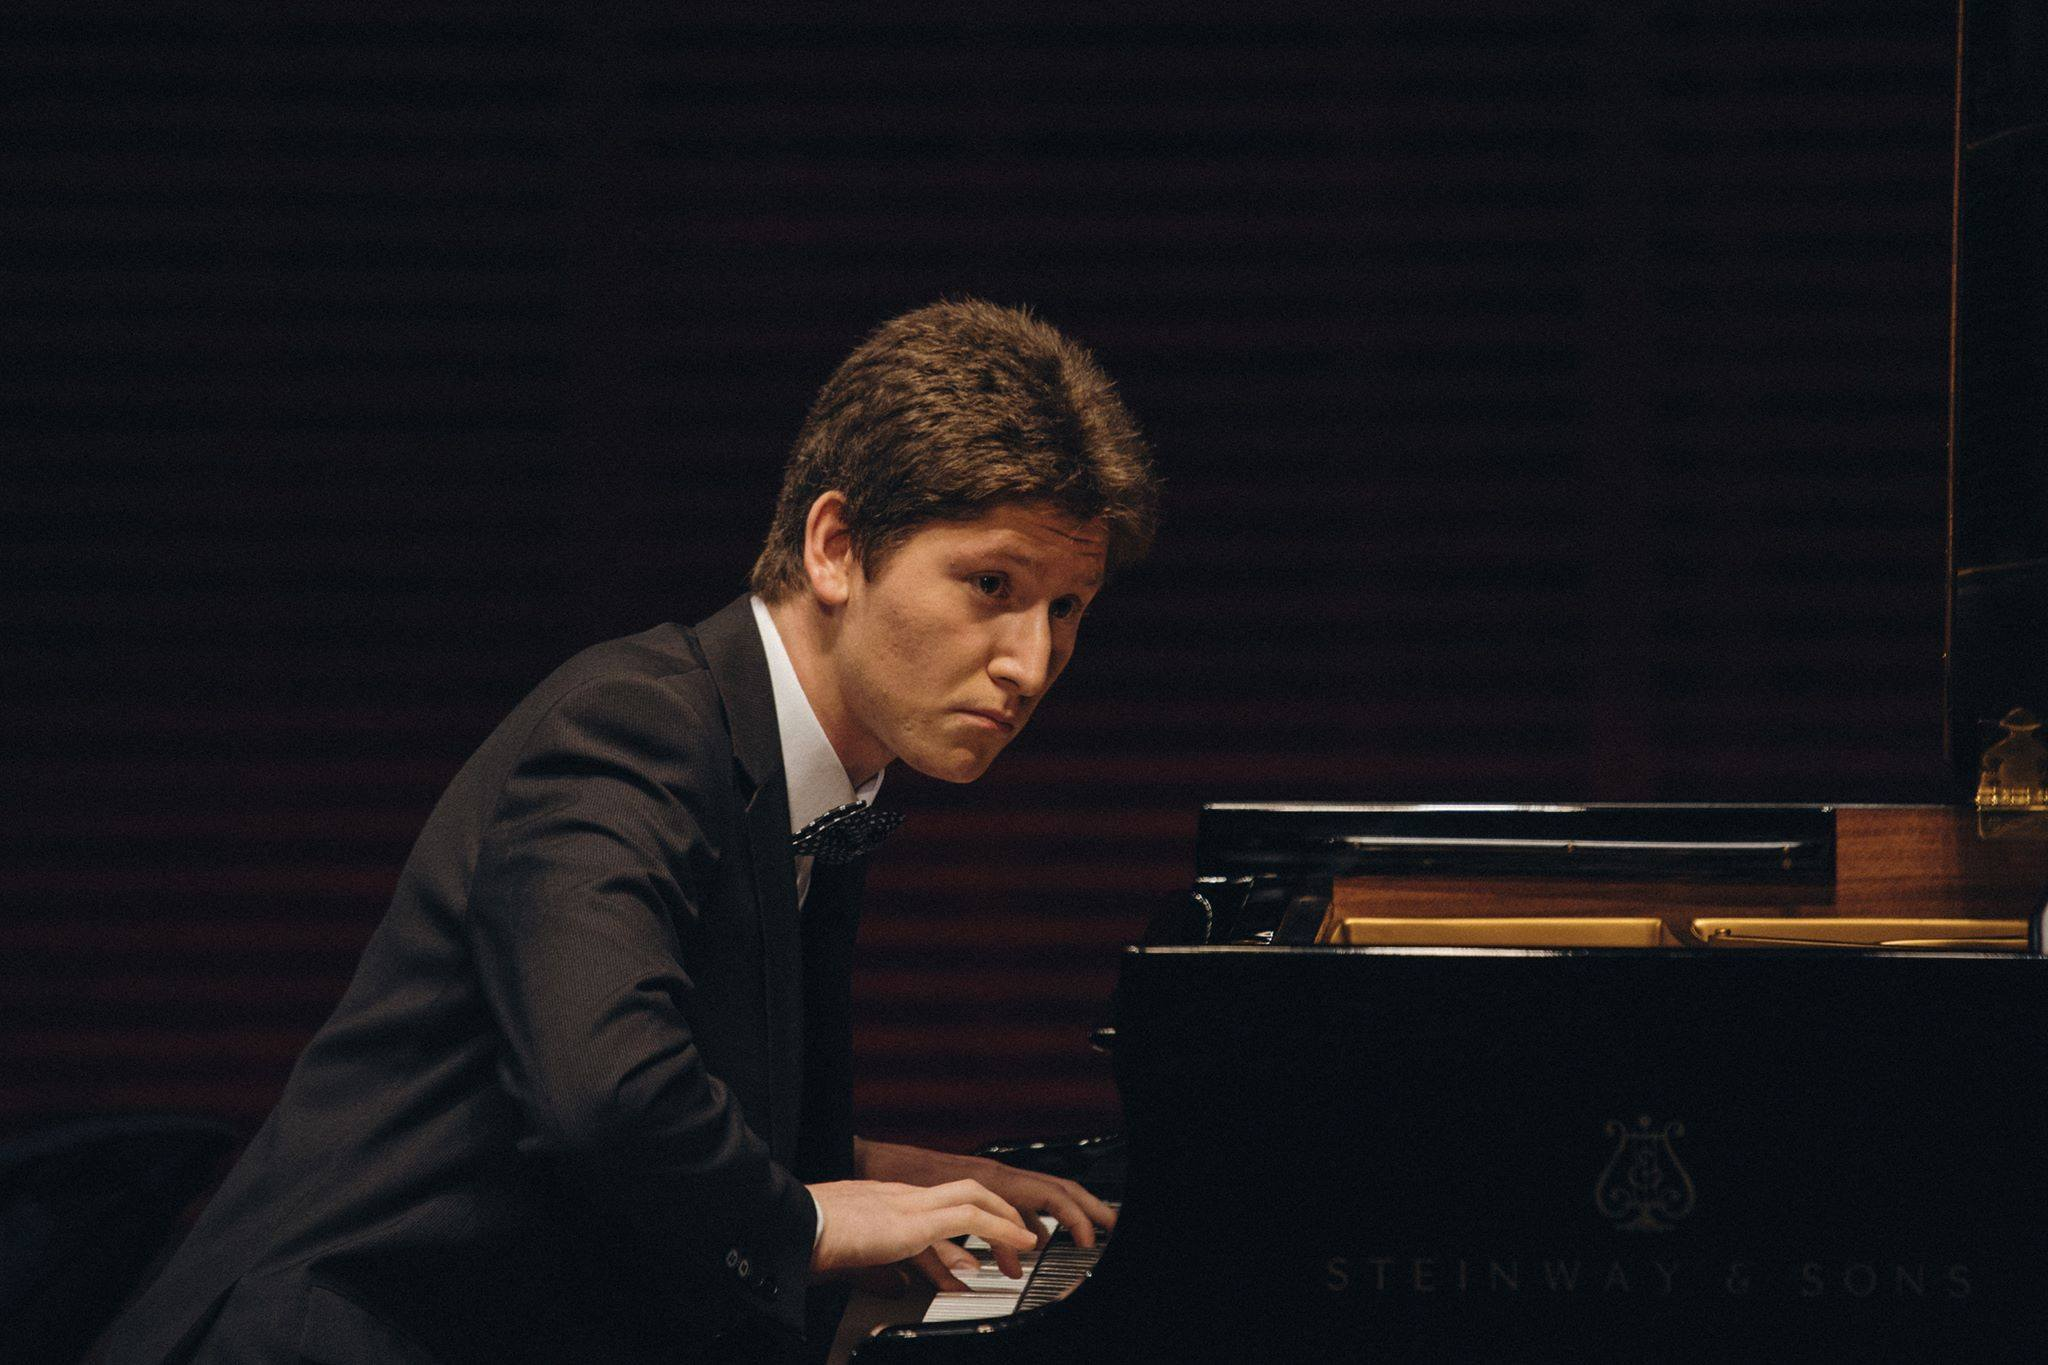 British piano student makes La Scala recital debut